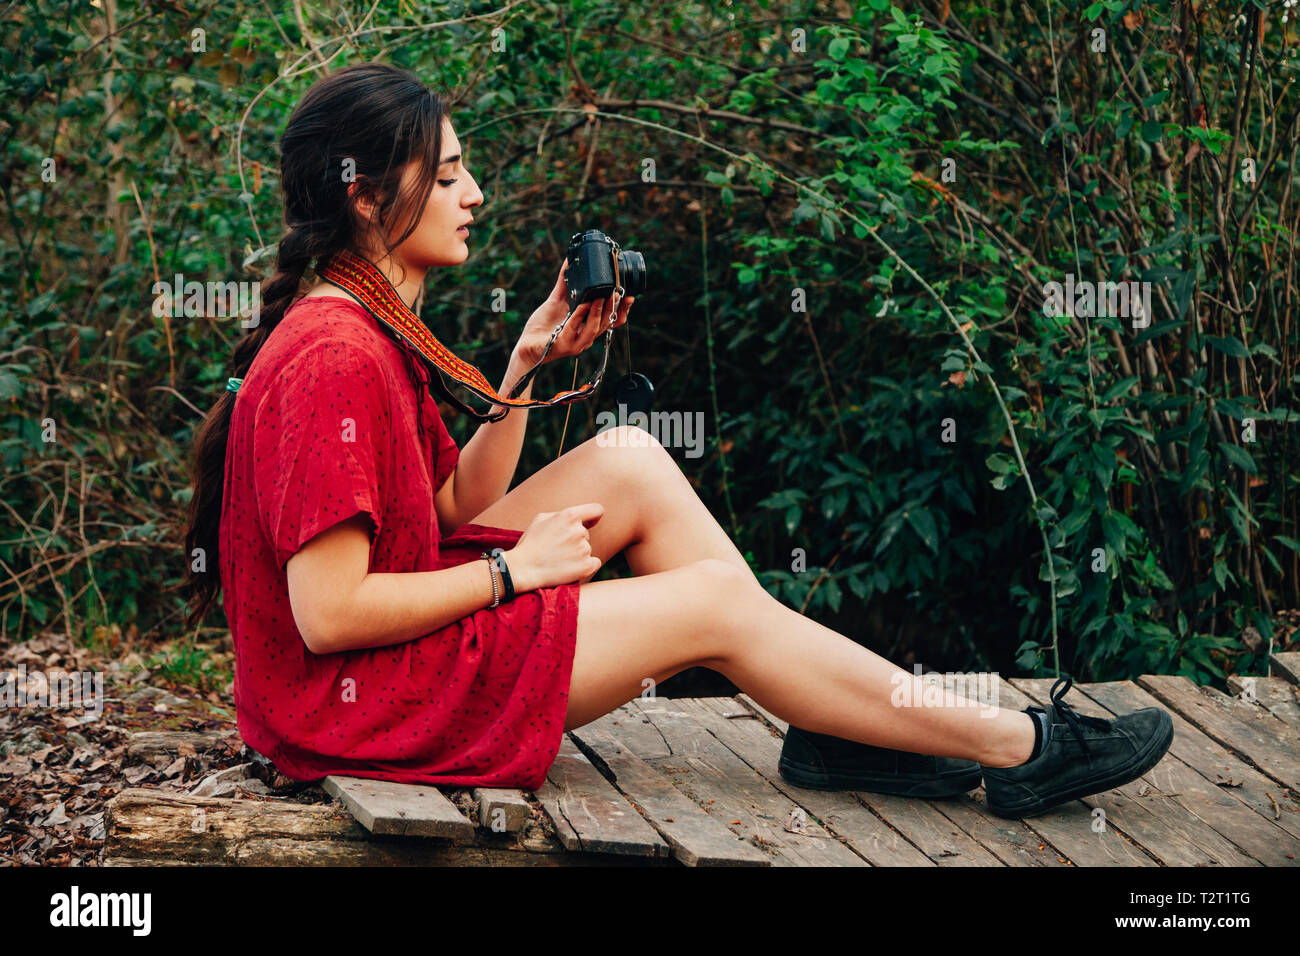 Young woman taking photos in the forest with her analogical camera wearing a red mini dress. - Stock Image